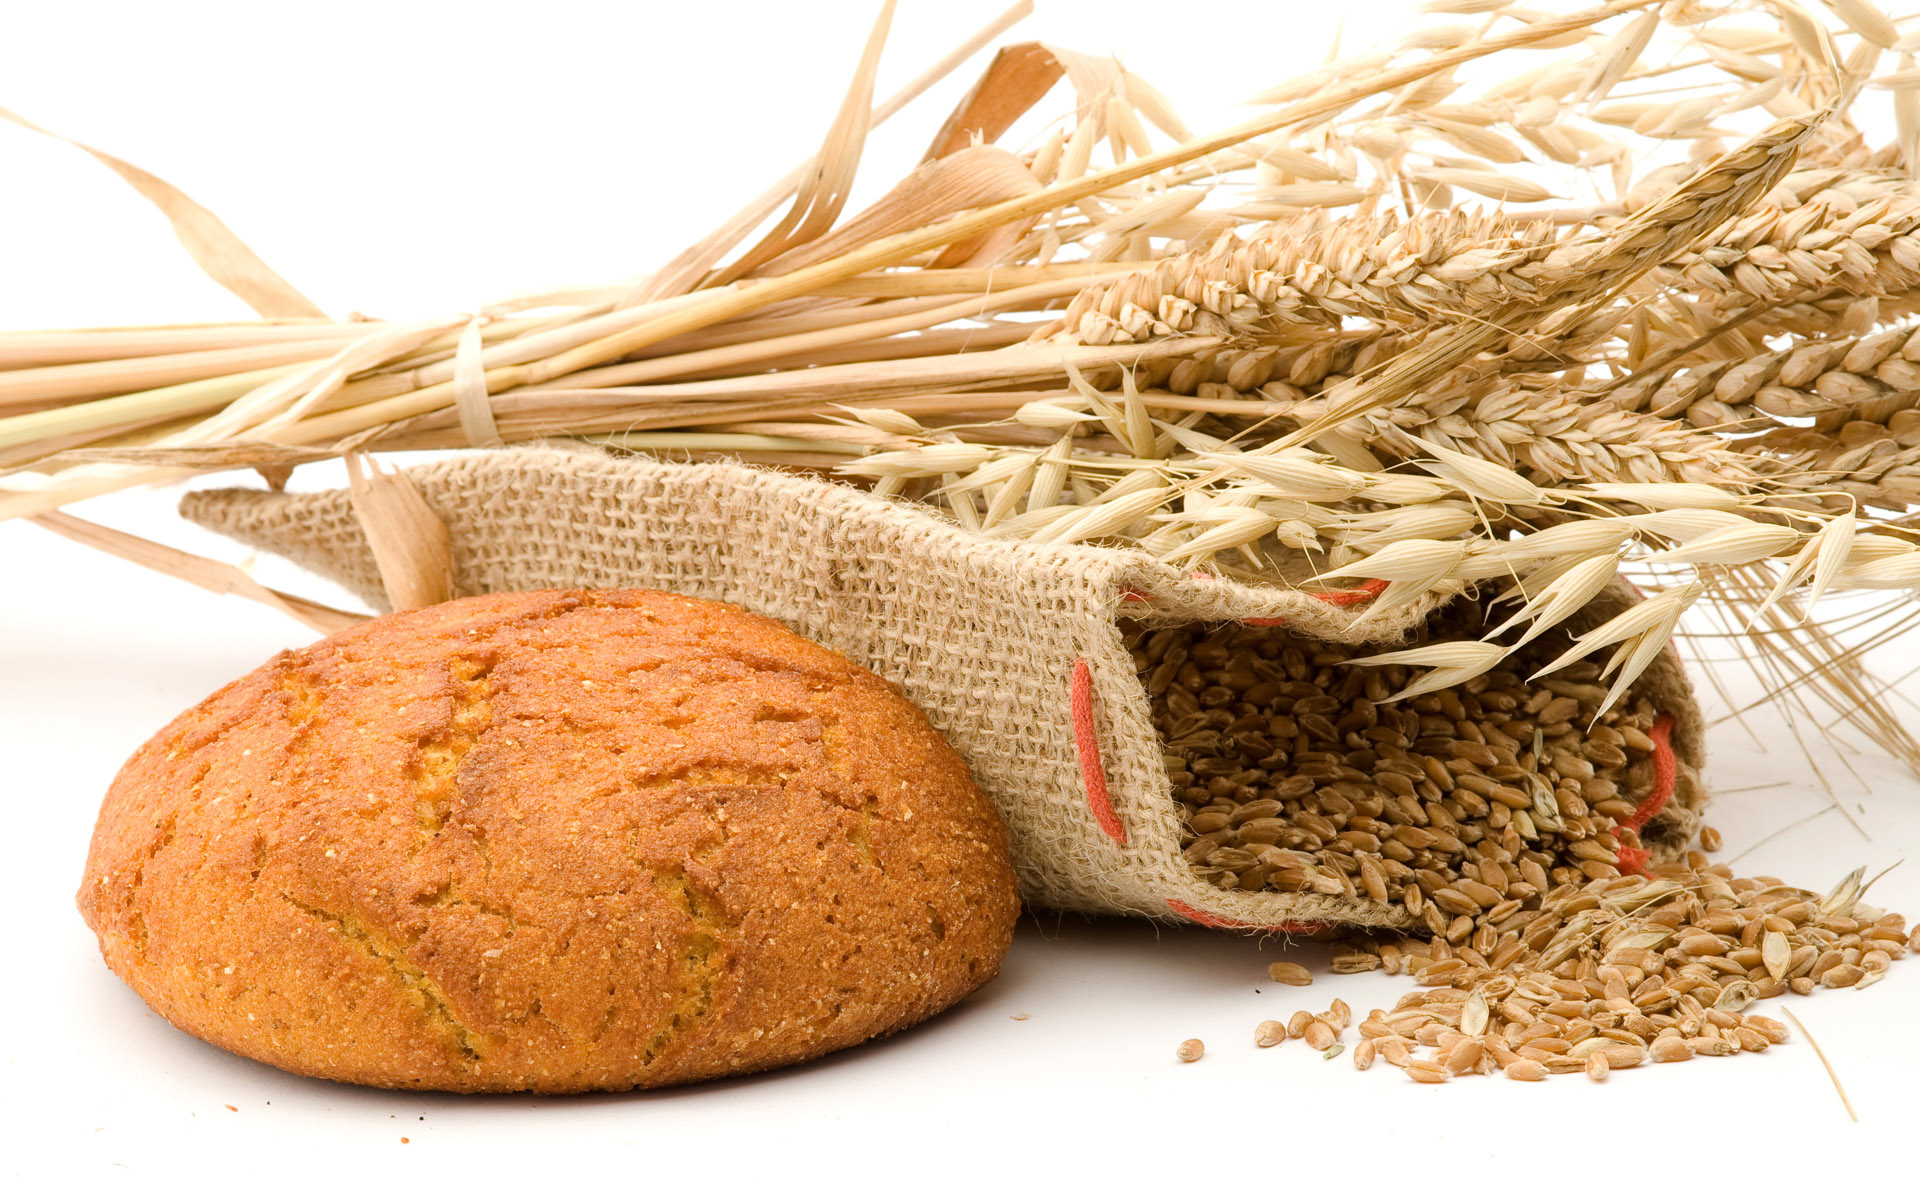 ... Bread And Wheat Images ...